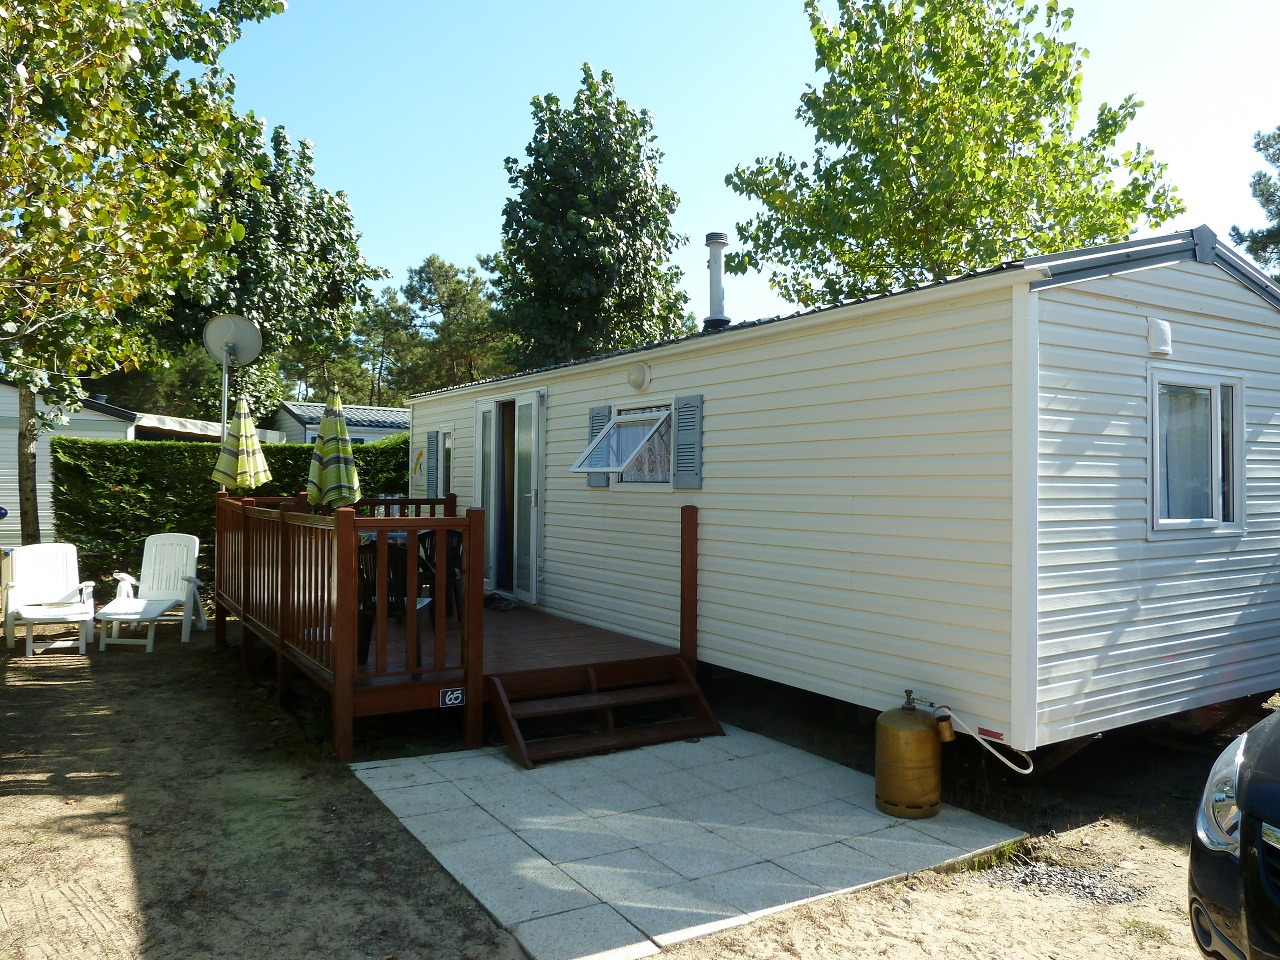 Vente mobile home saint jean de monts